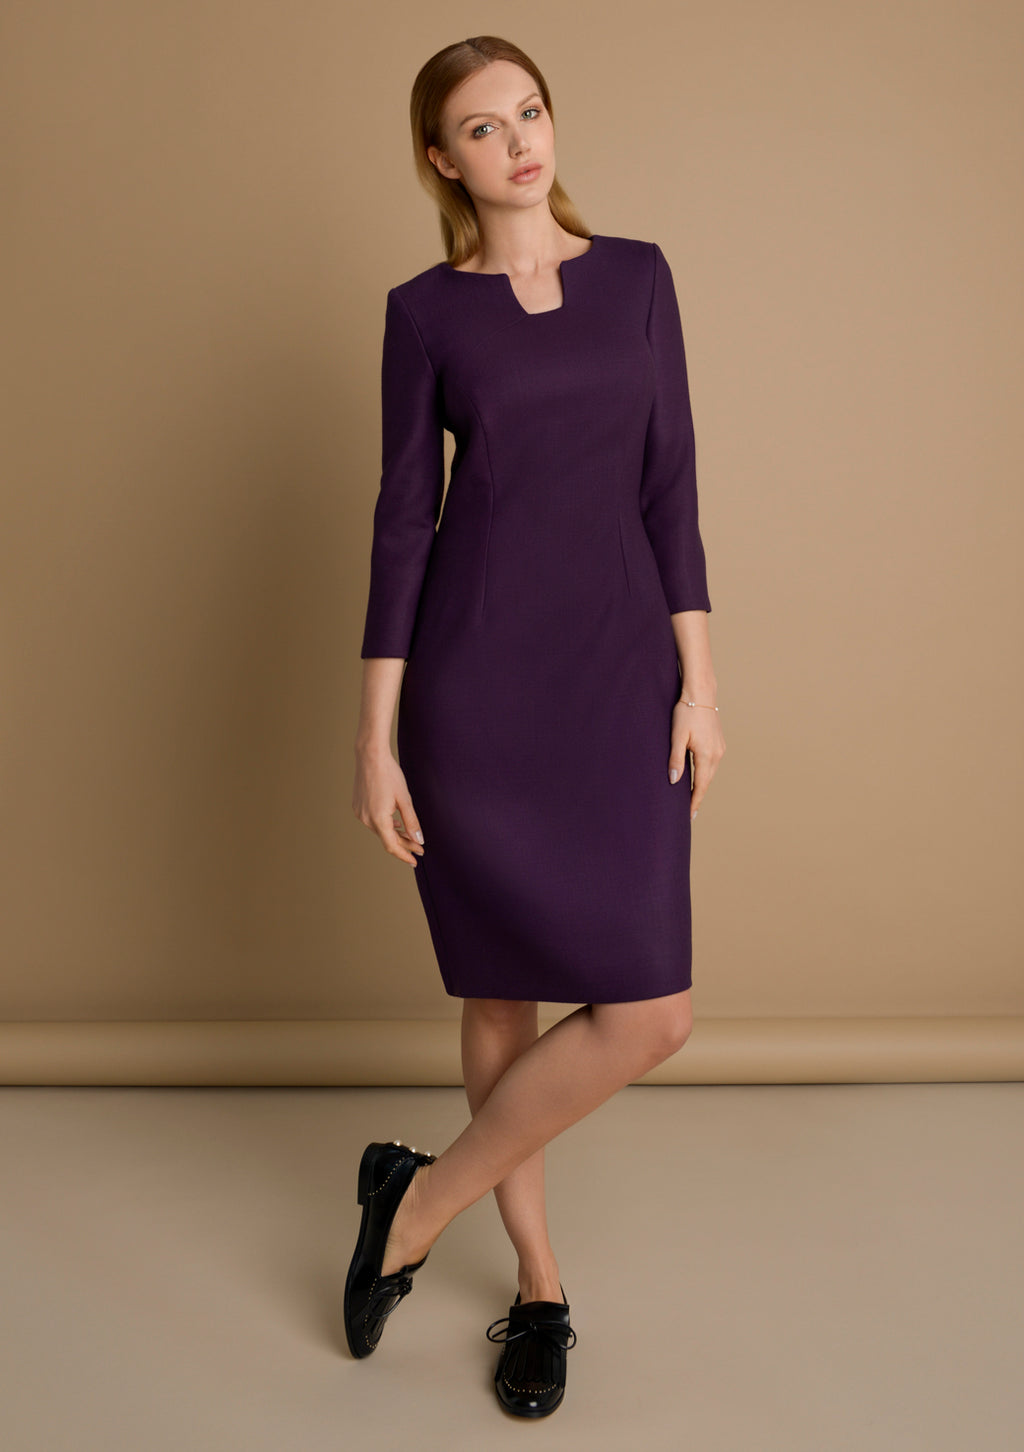 Classic wool dress for autumn by Kotys London. Full view picture.